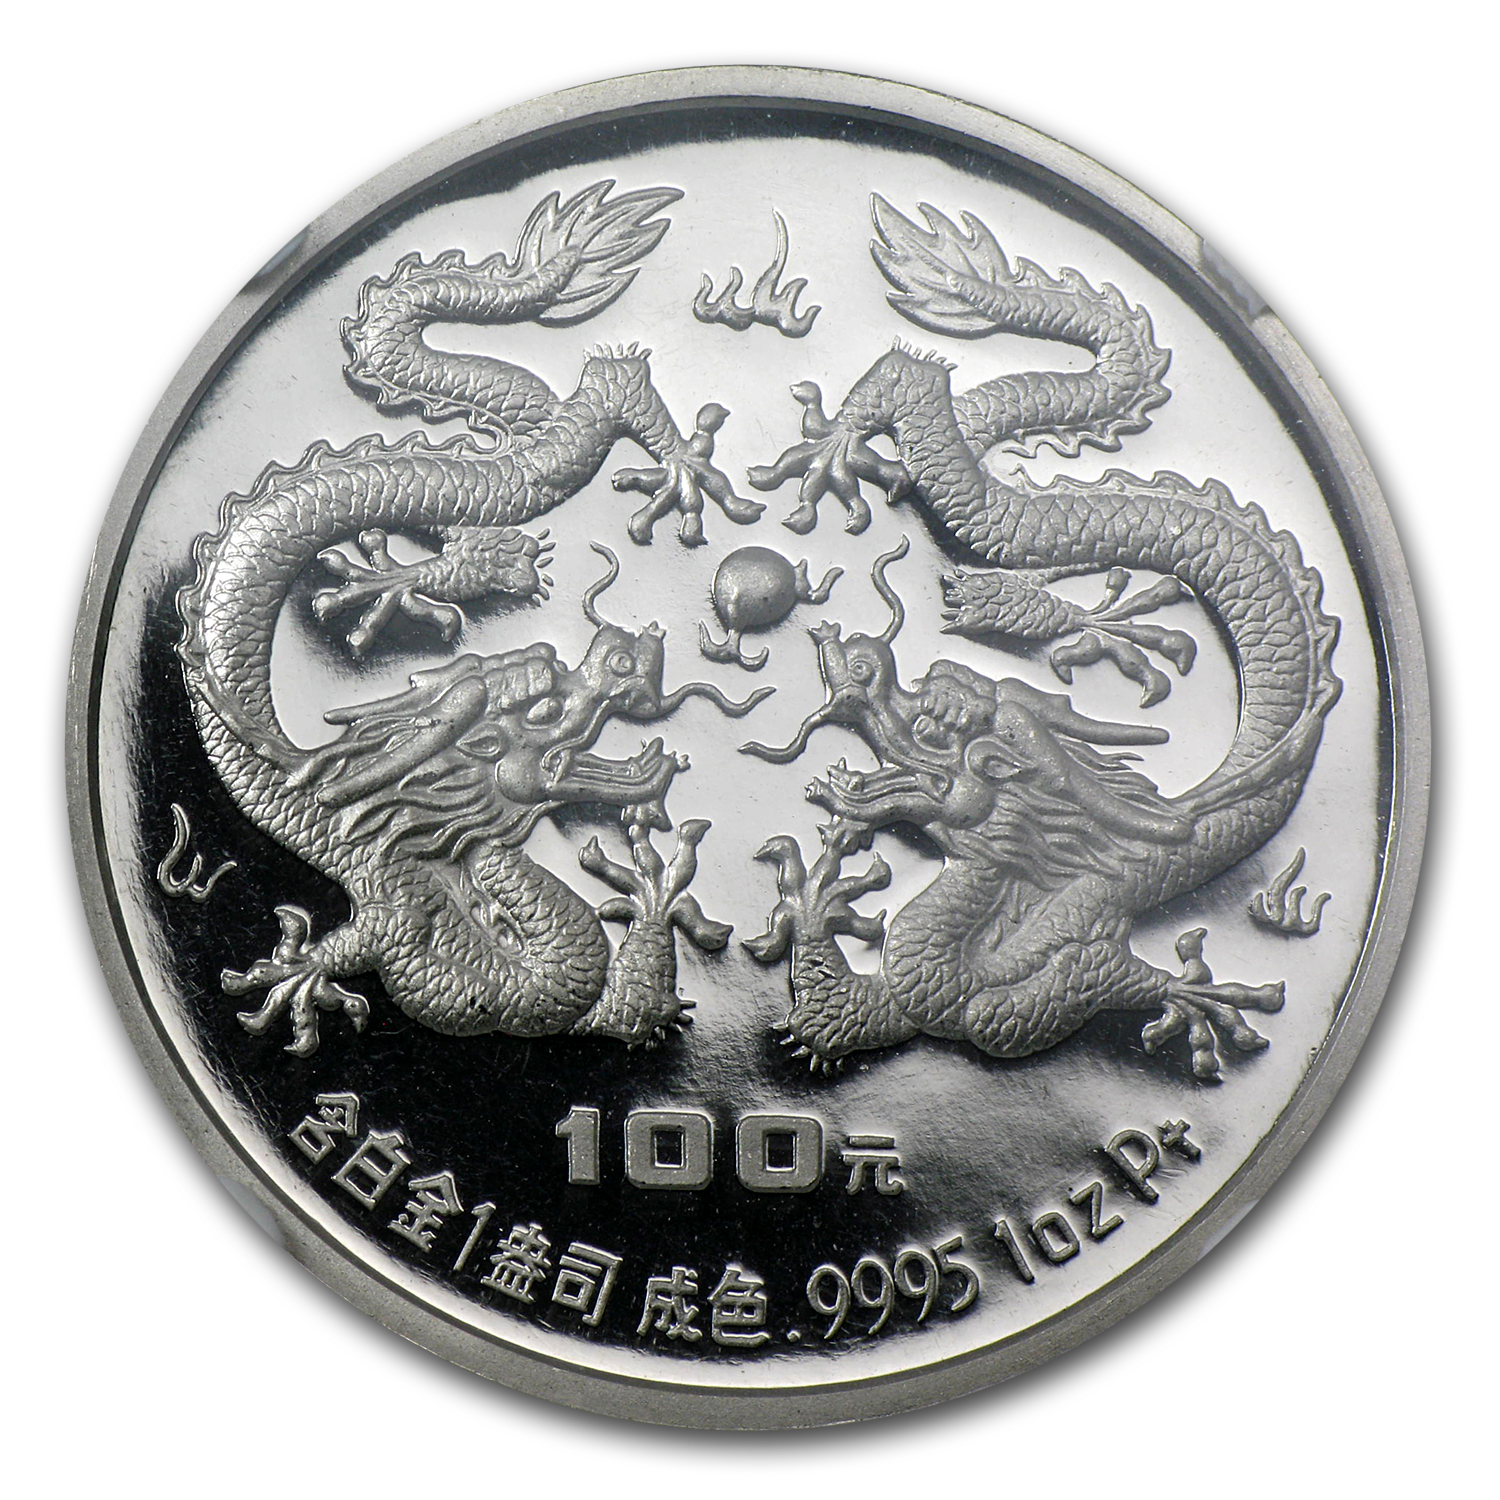 1988 China 1 oz Proof Platinum Dragon 100 Yuan PF-69 NGC